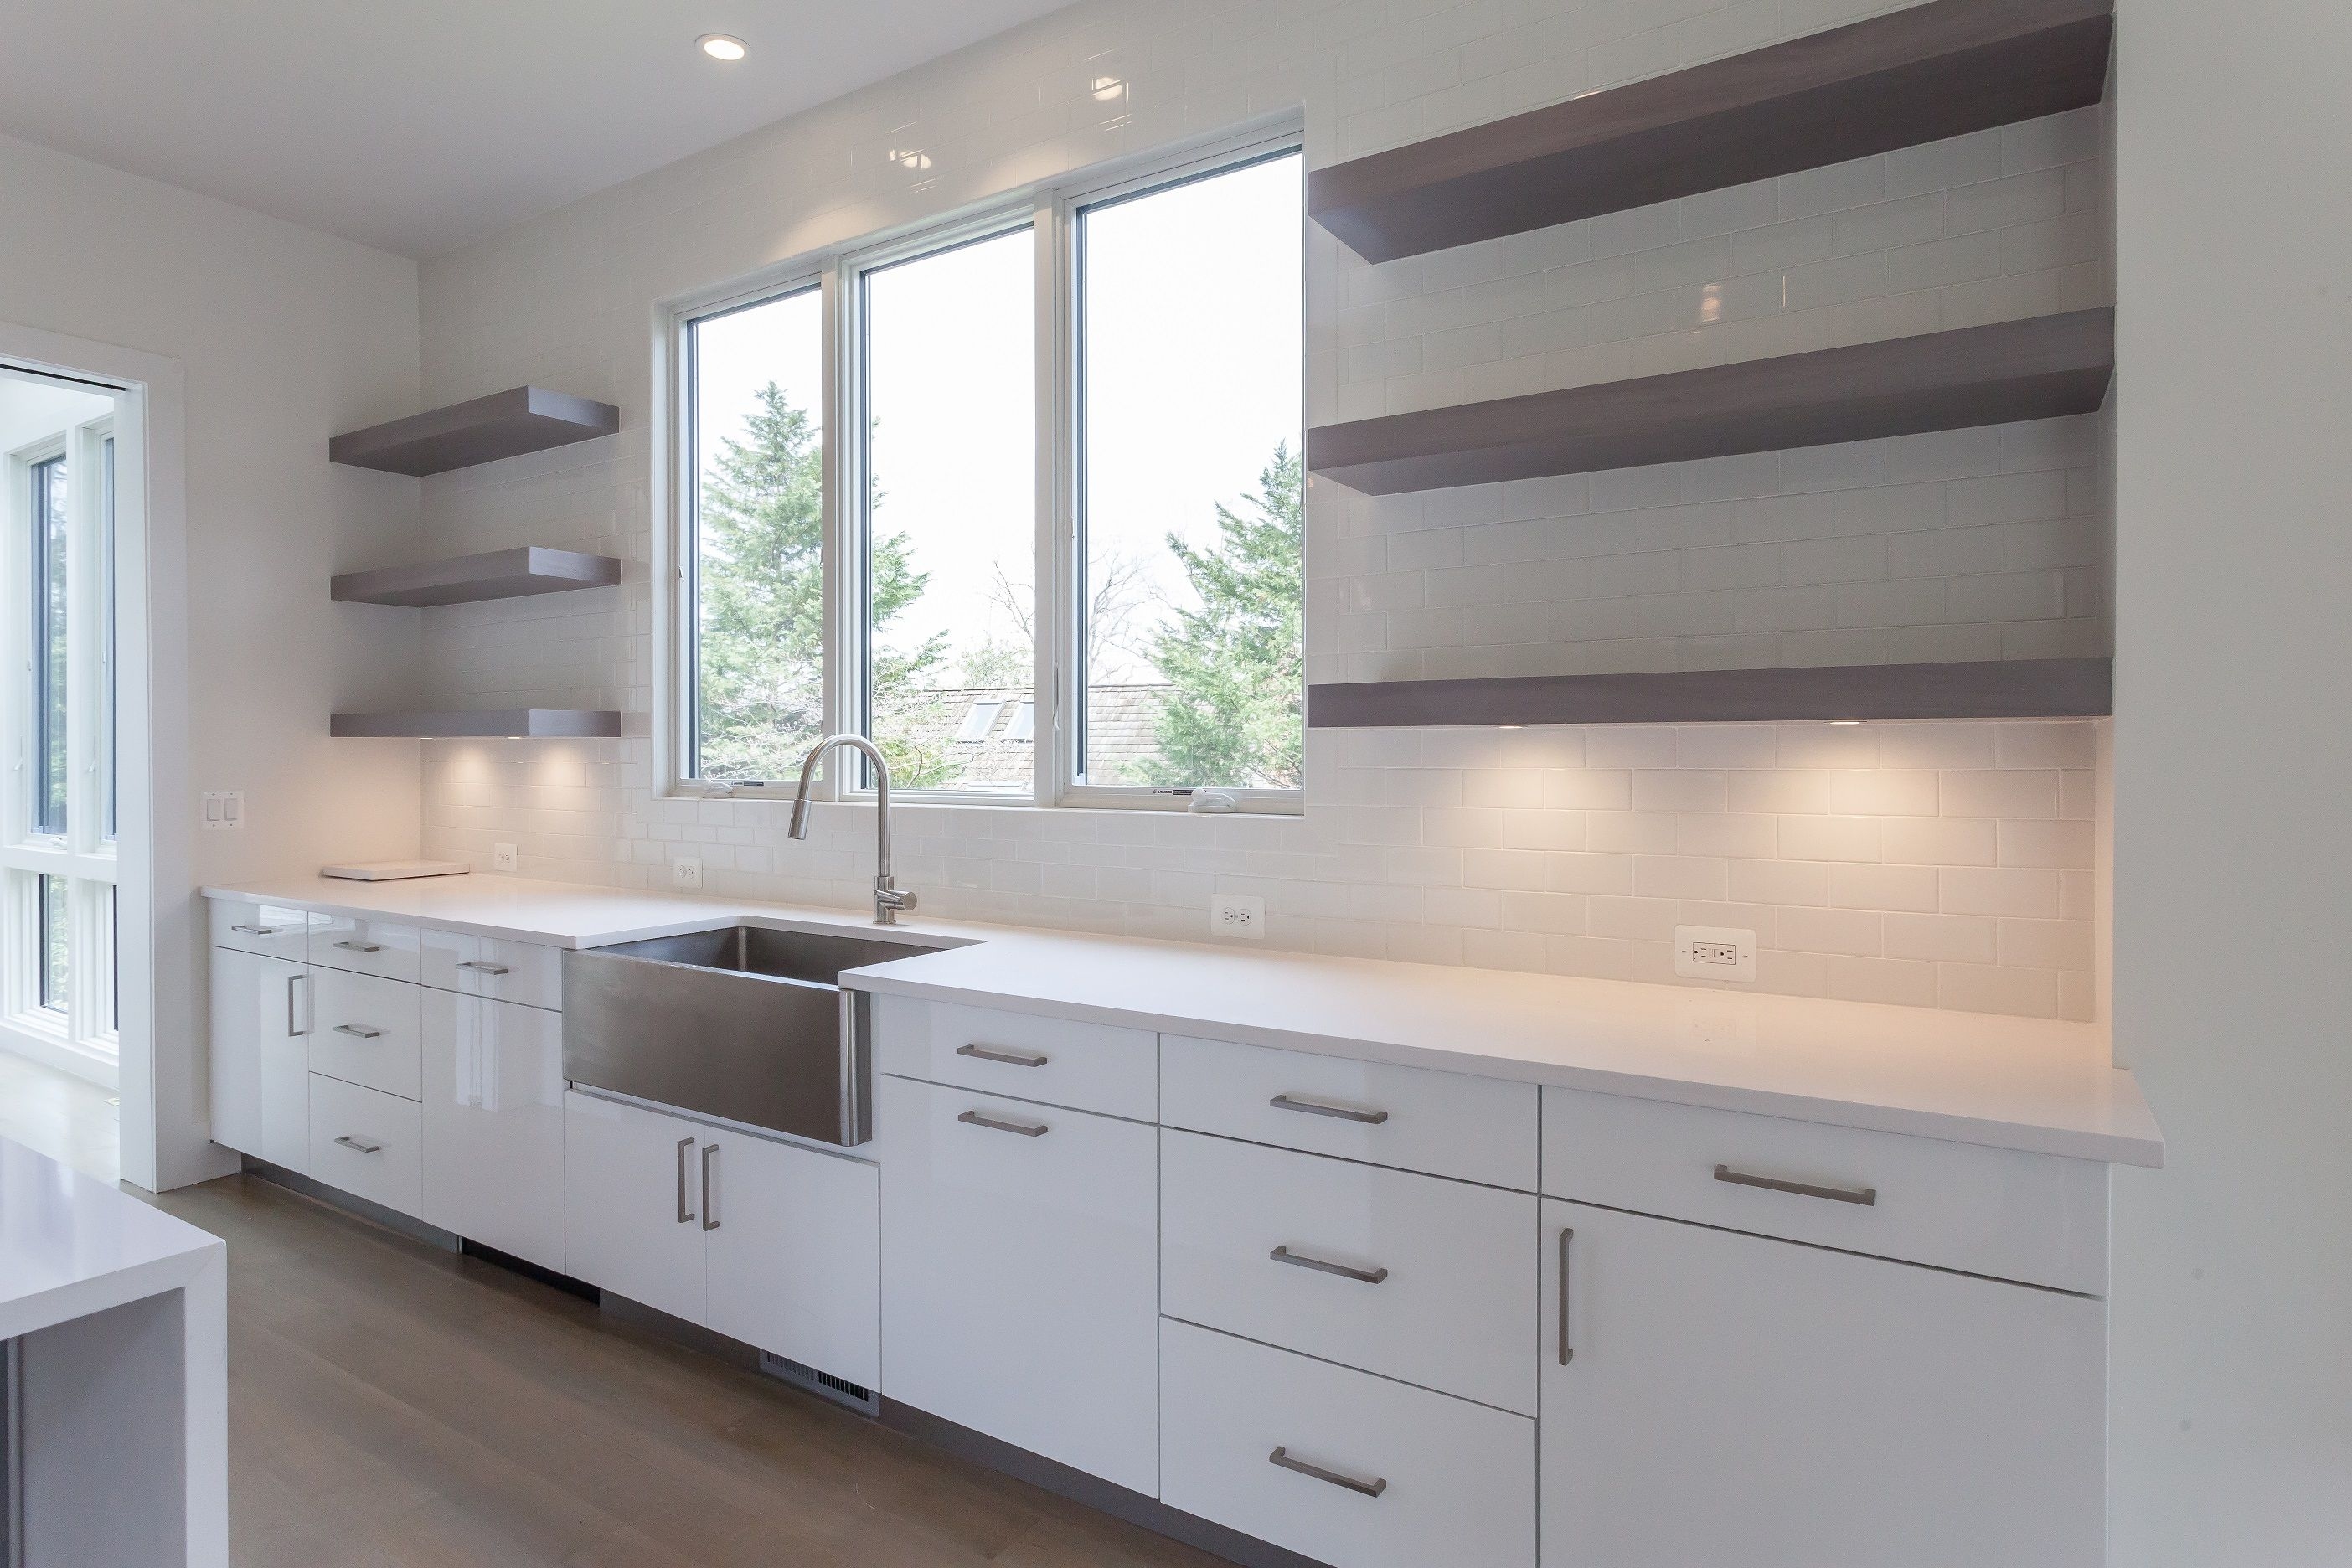 Modern Kitchen With Stainless Steel Farmhouse Sink And White High Gloss Slab Lower Cabinets Combined With Stained Open Up Kitchen Design Kitchen Modern Kitchen